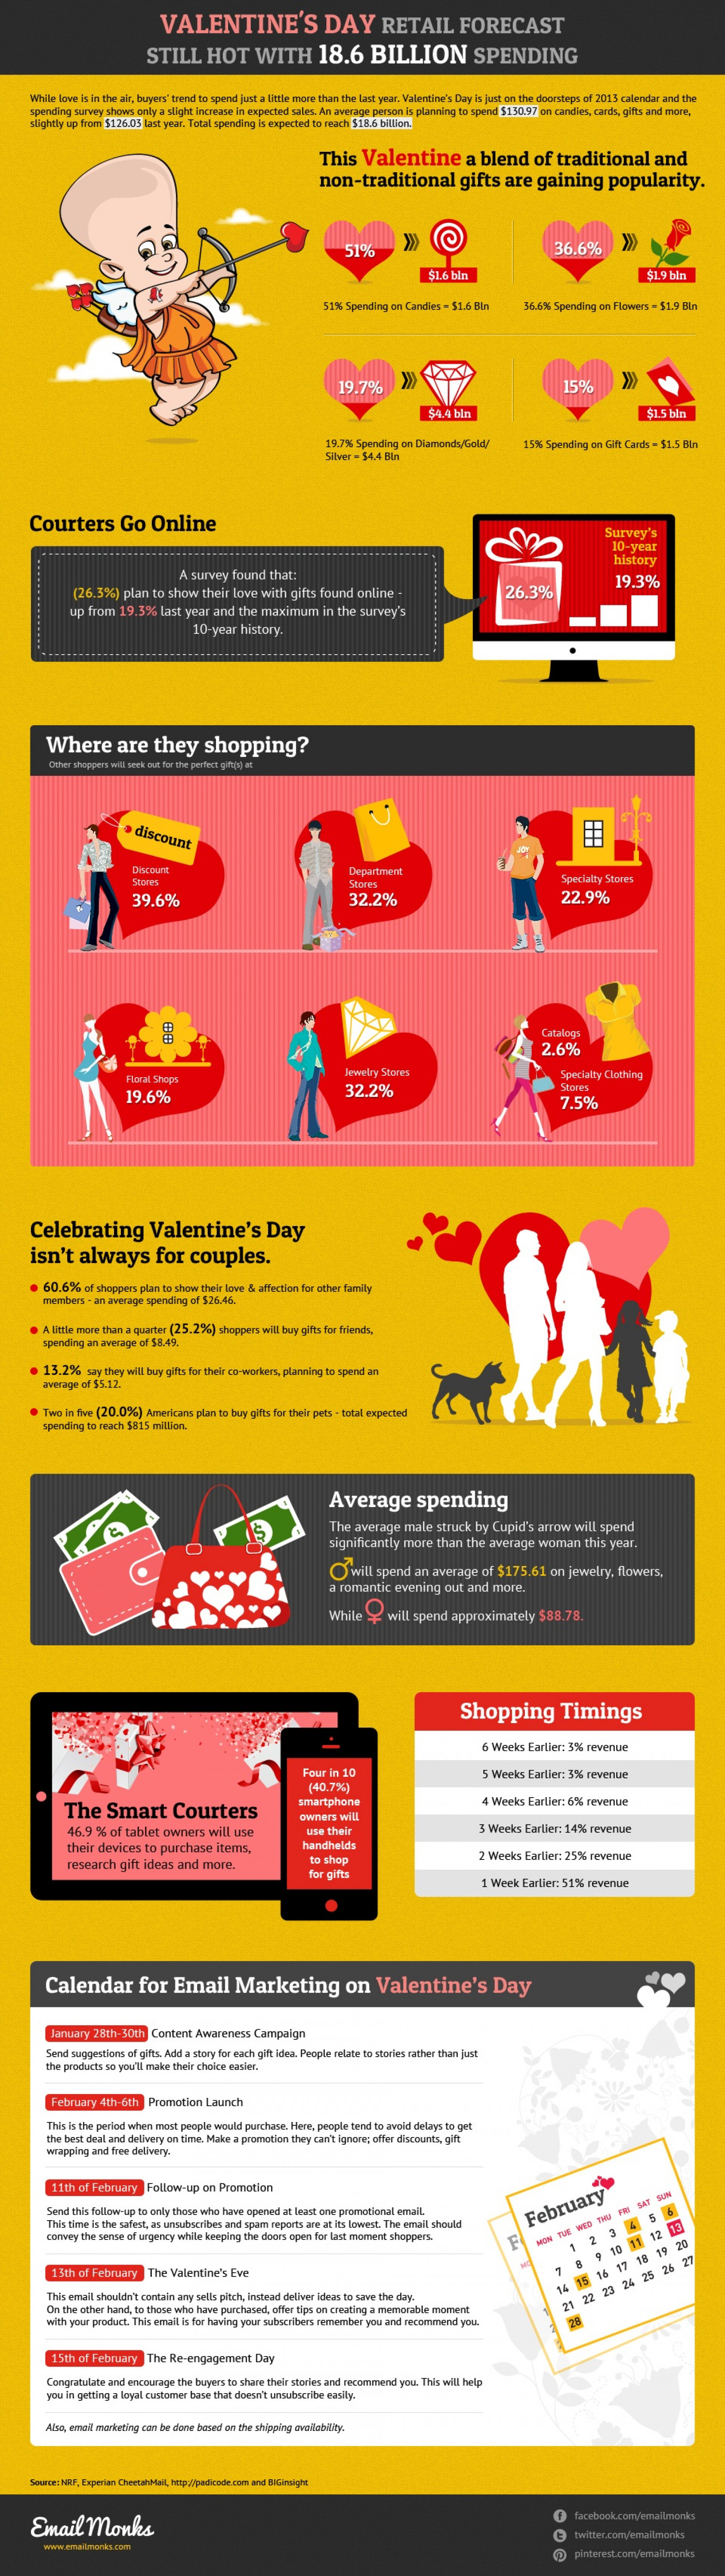 Email Monks Valentine's Day Retail Sales Forecast 2013 Infographic